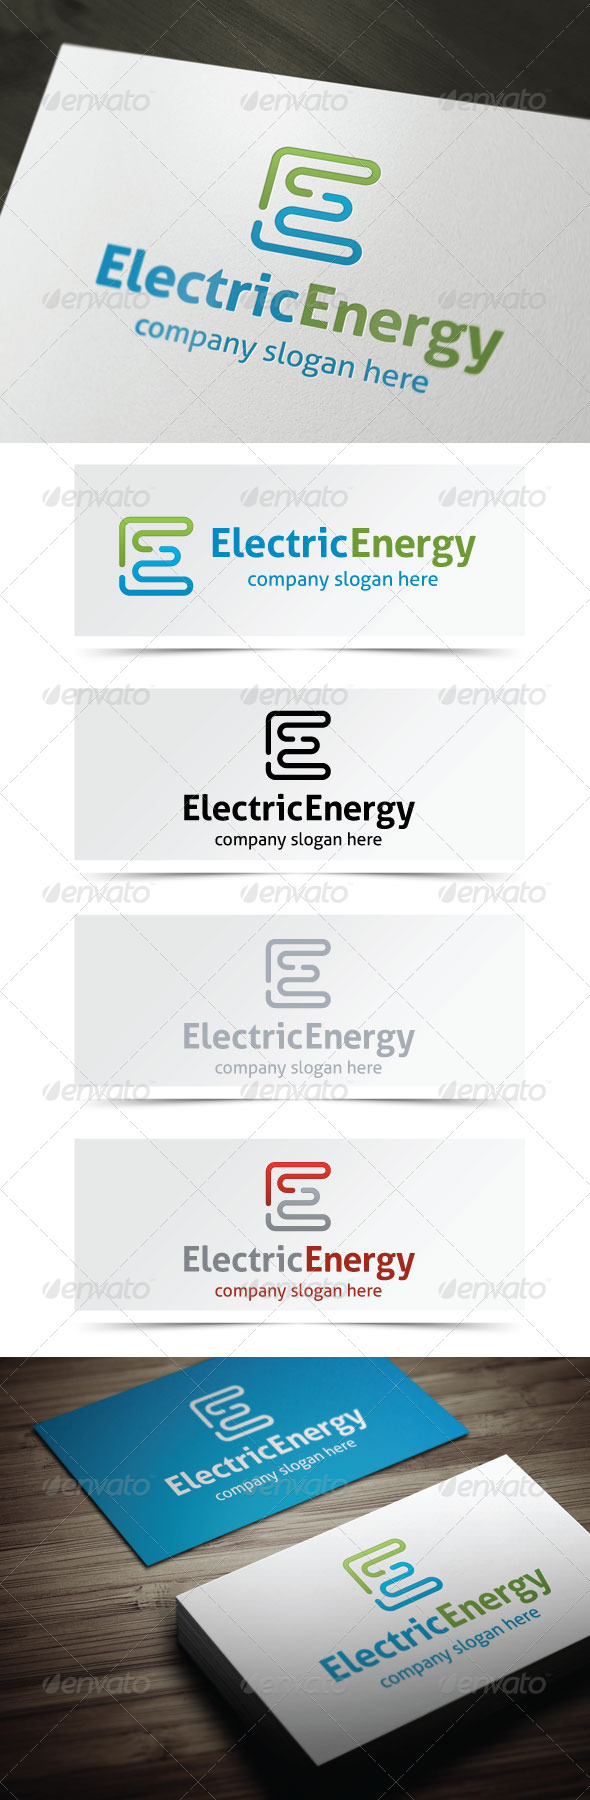 GraphicRiver Electric Energy 4978133